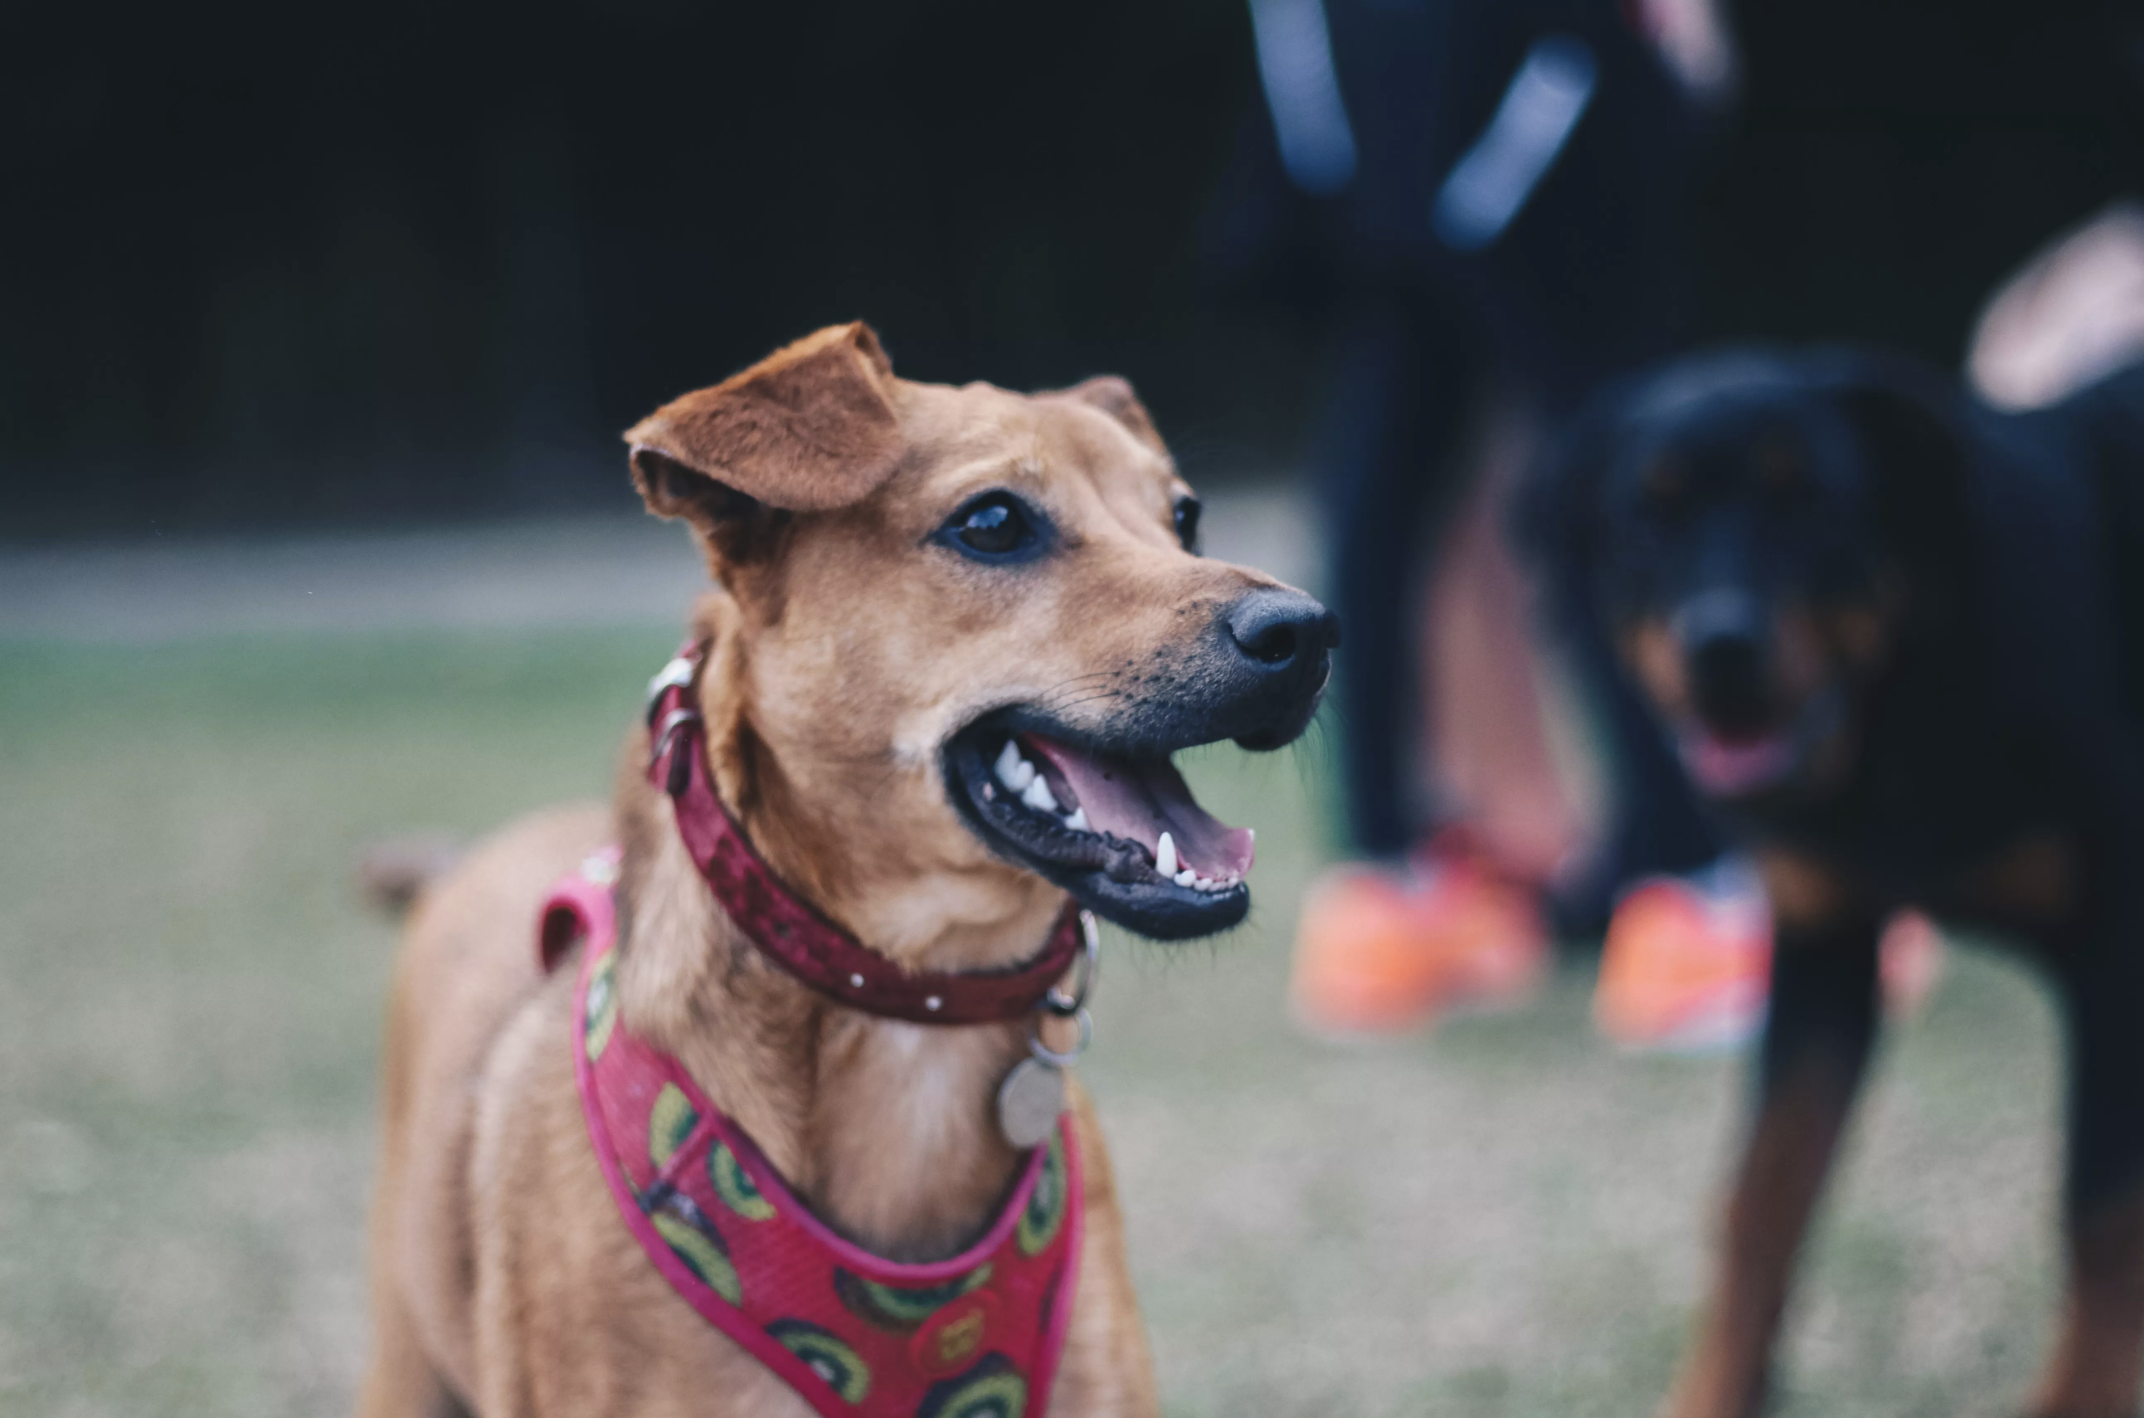 Top 5 Dog Parks in St. Louis